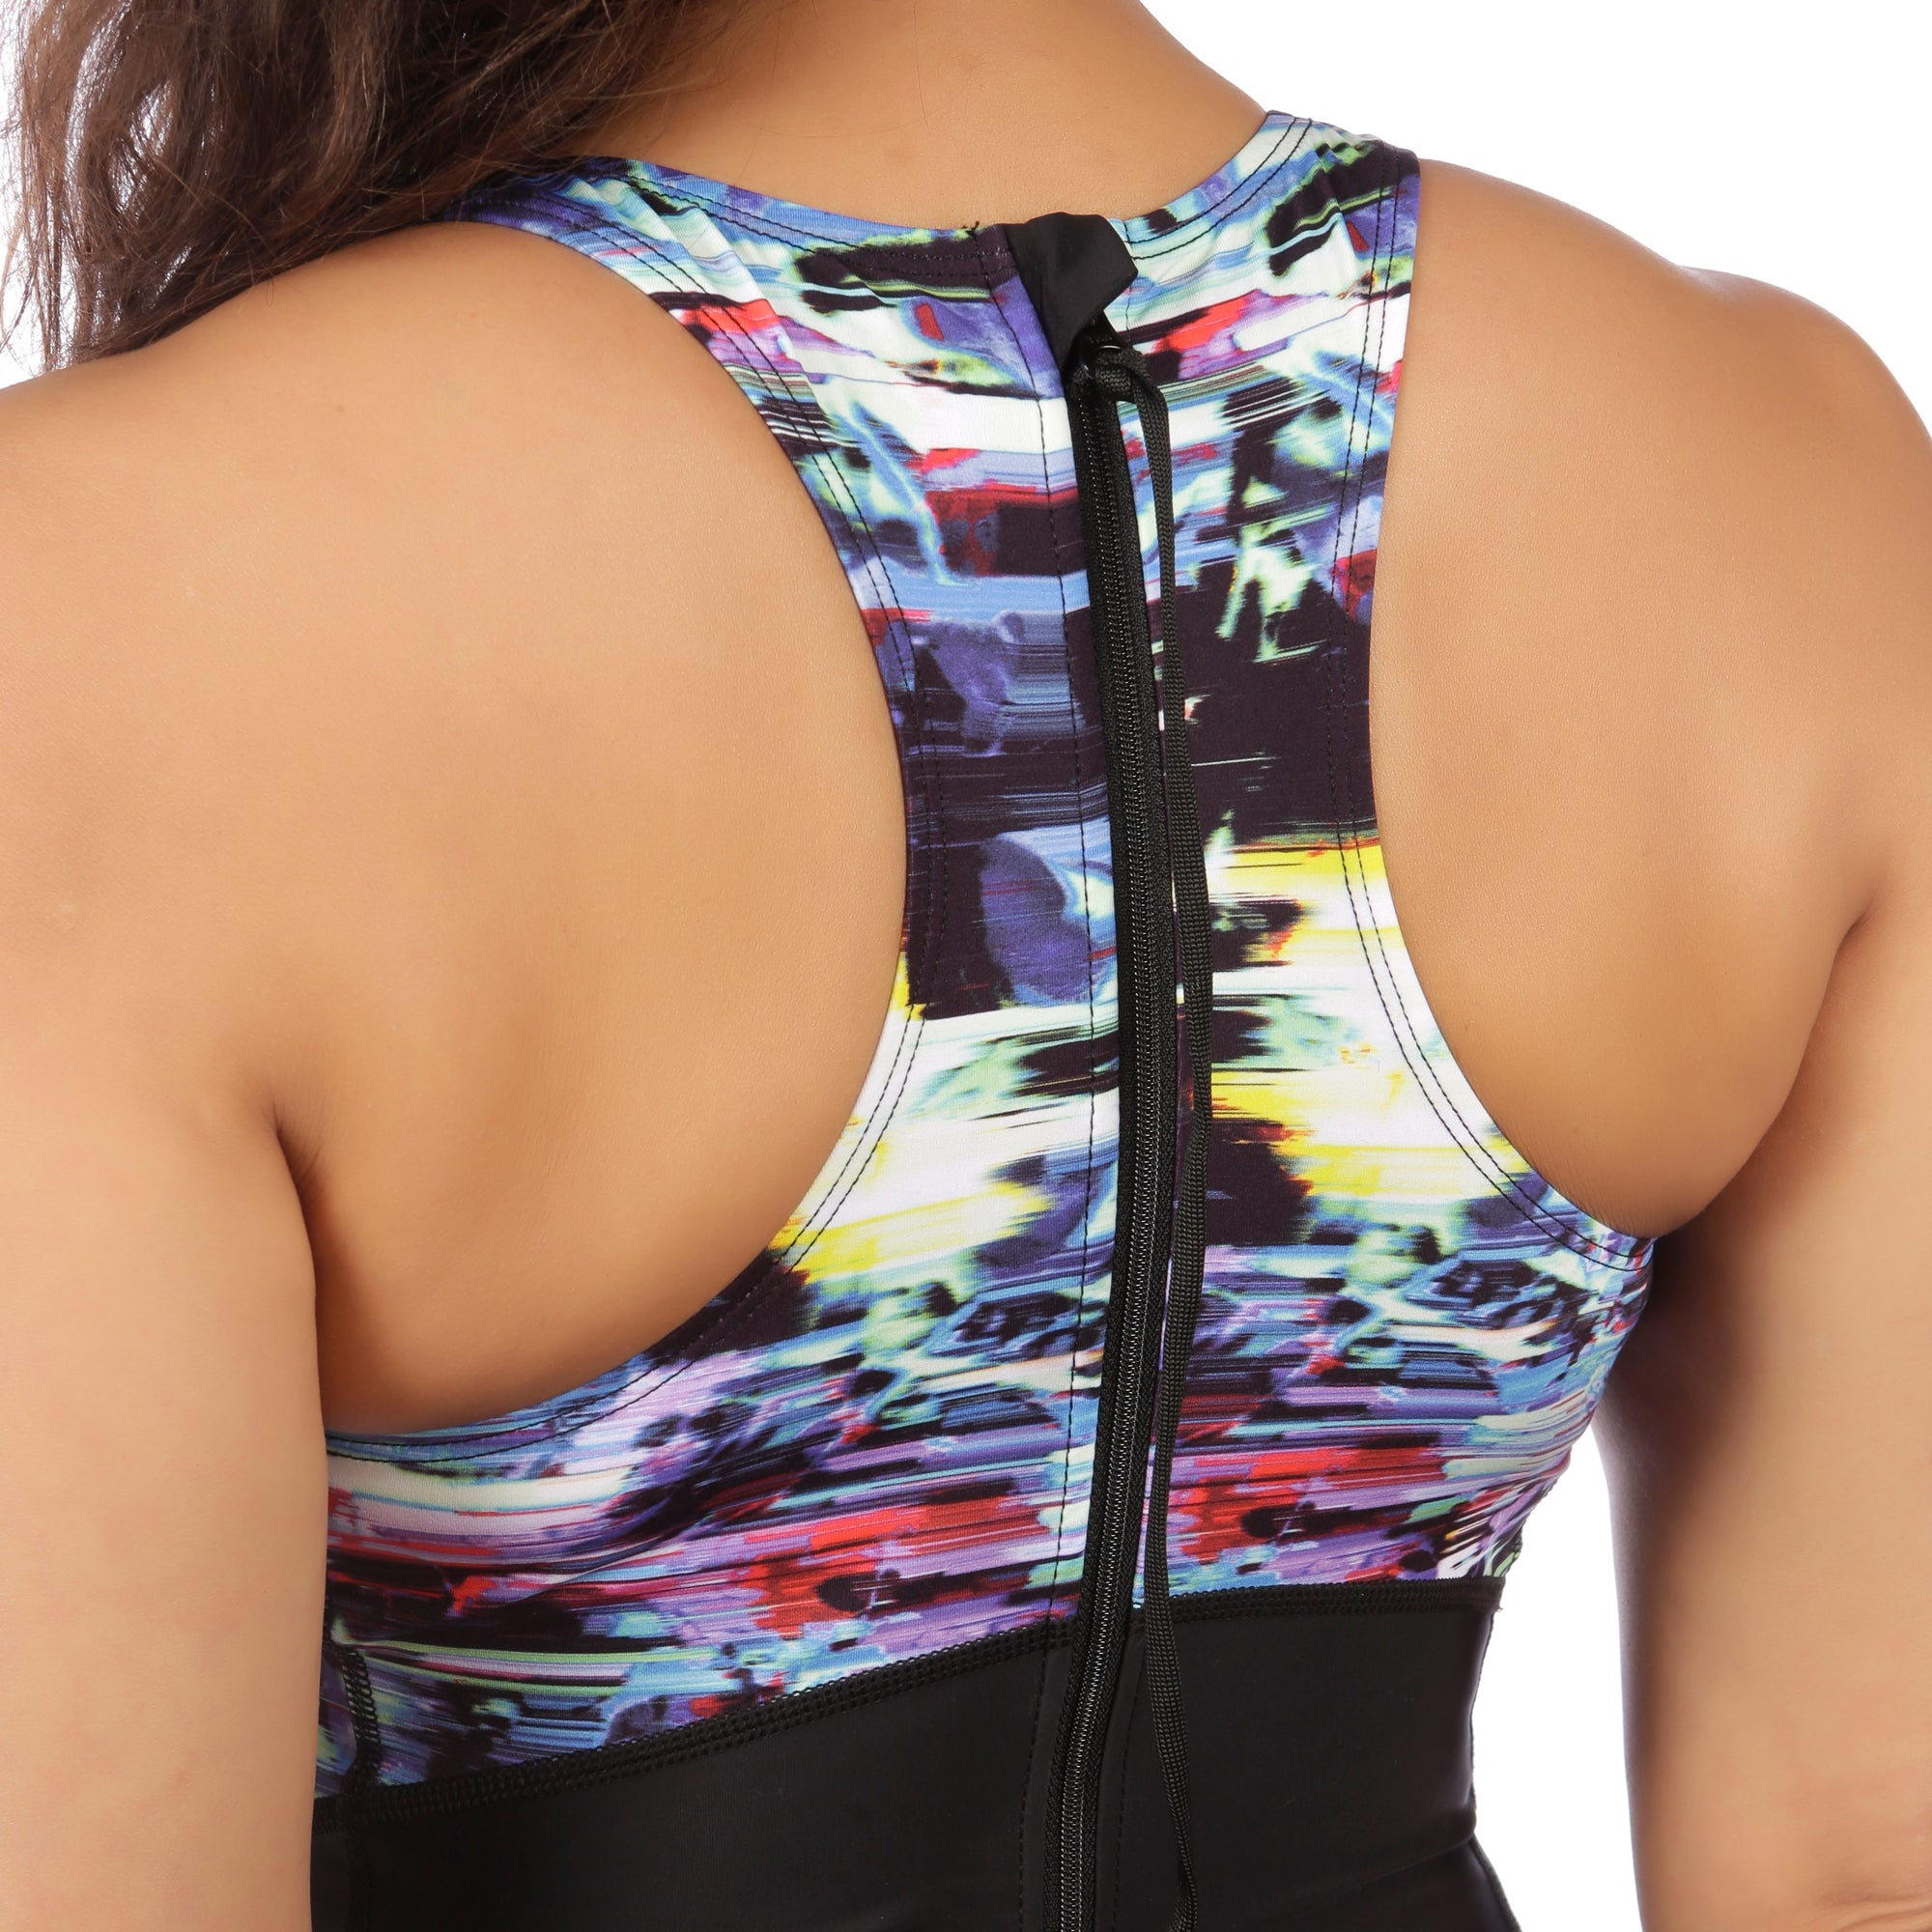 Flow Swimsuit with Support Bra in Glitched Floral